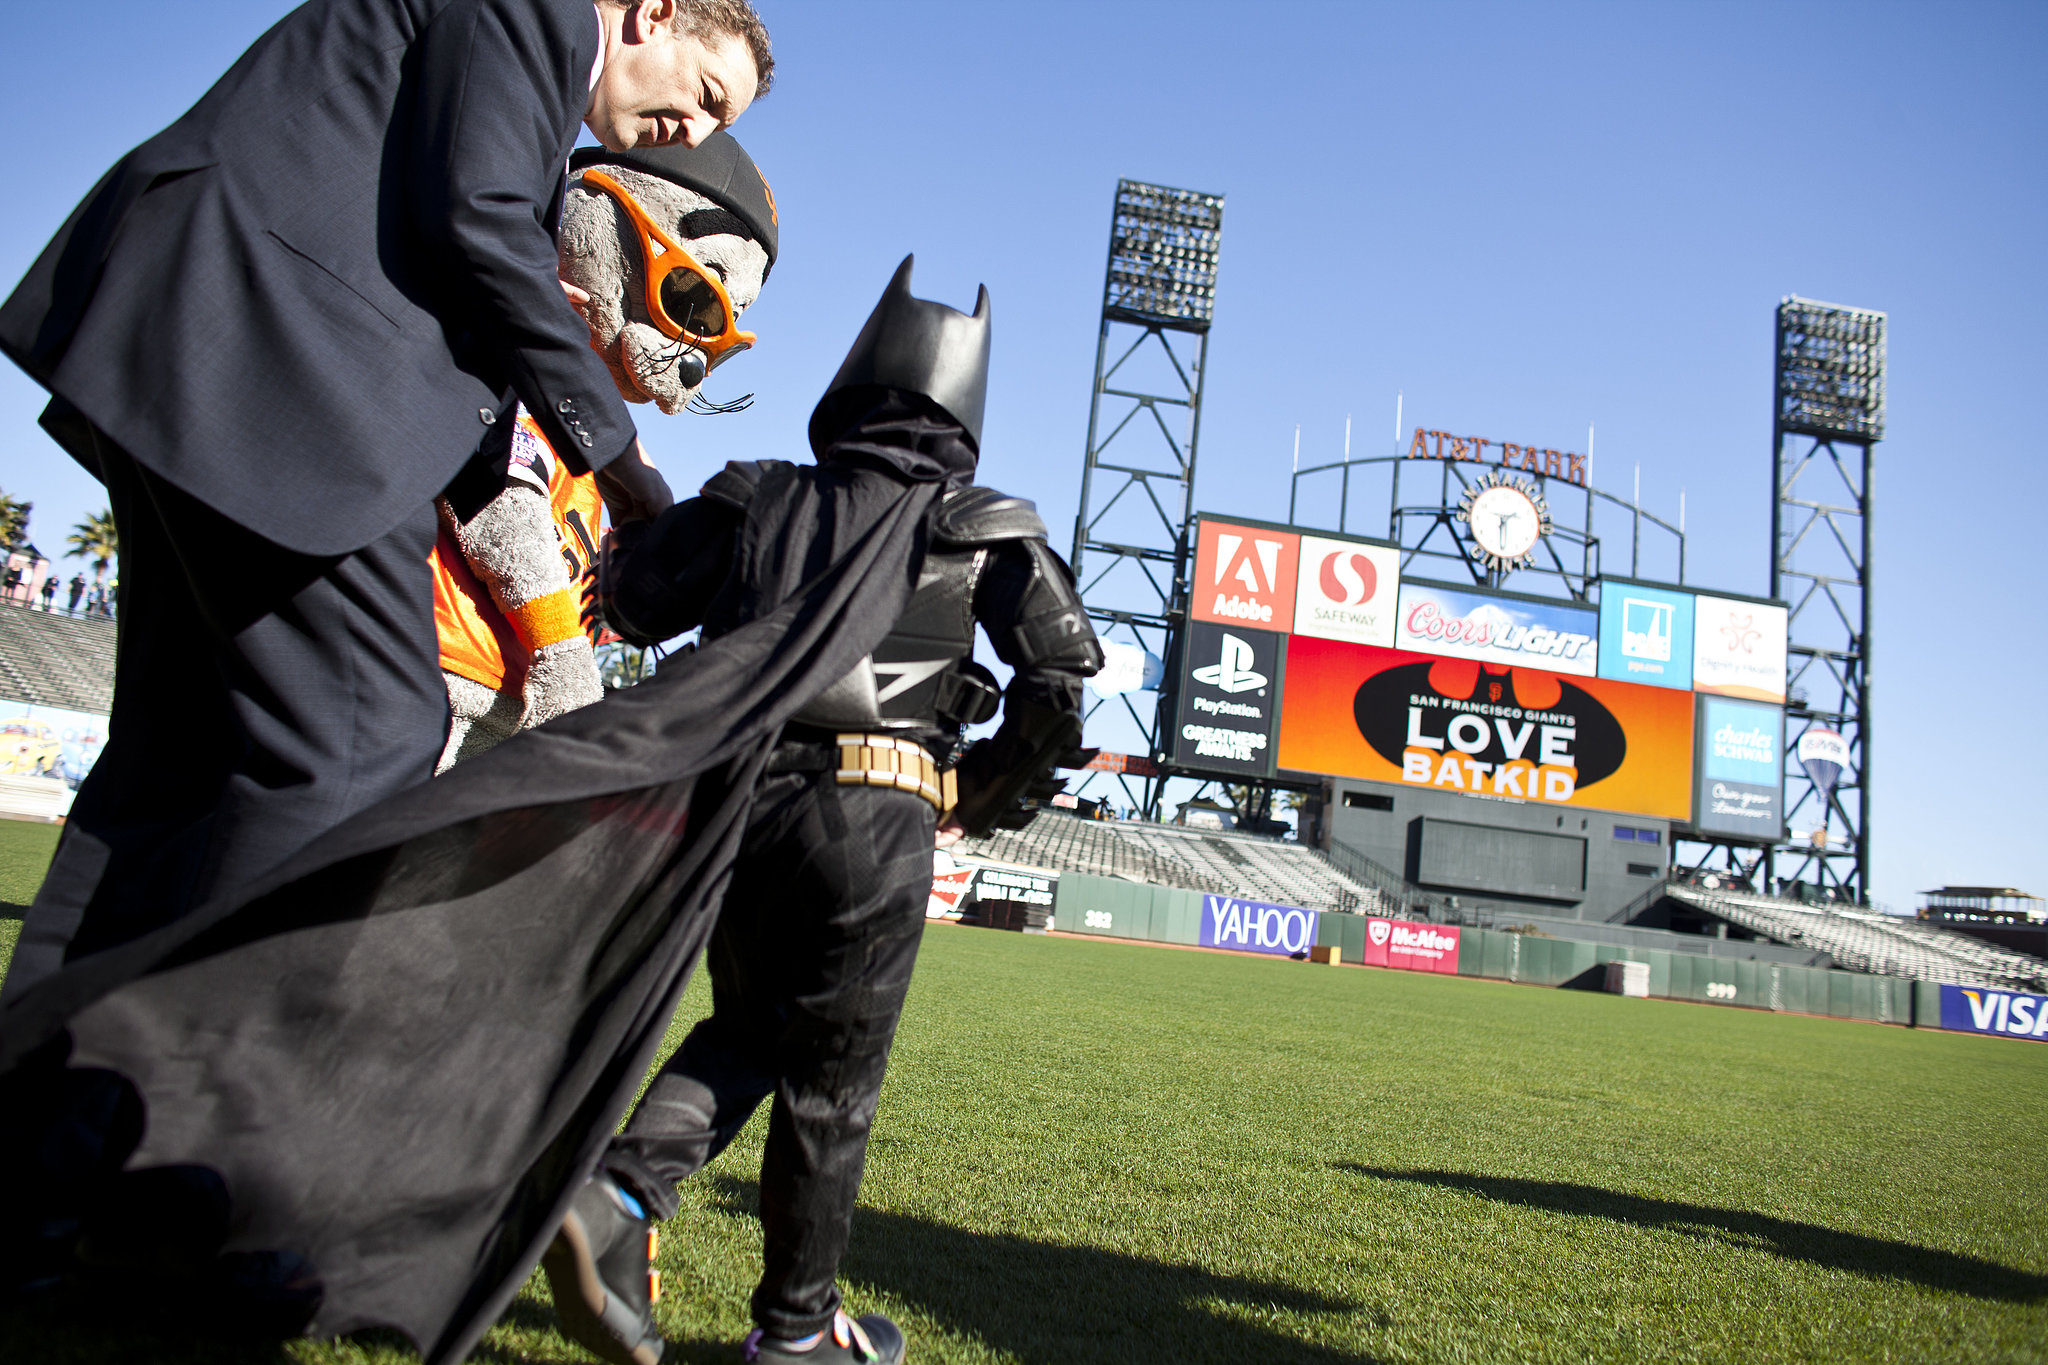 Batkid saved Lou Seal, the Giants mascot, who was ki